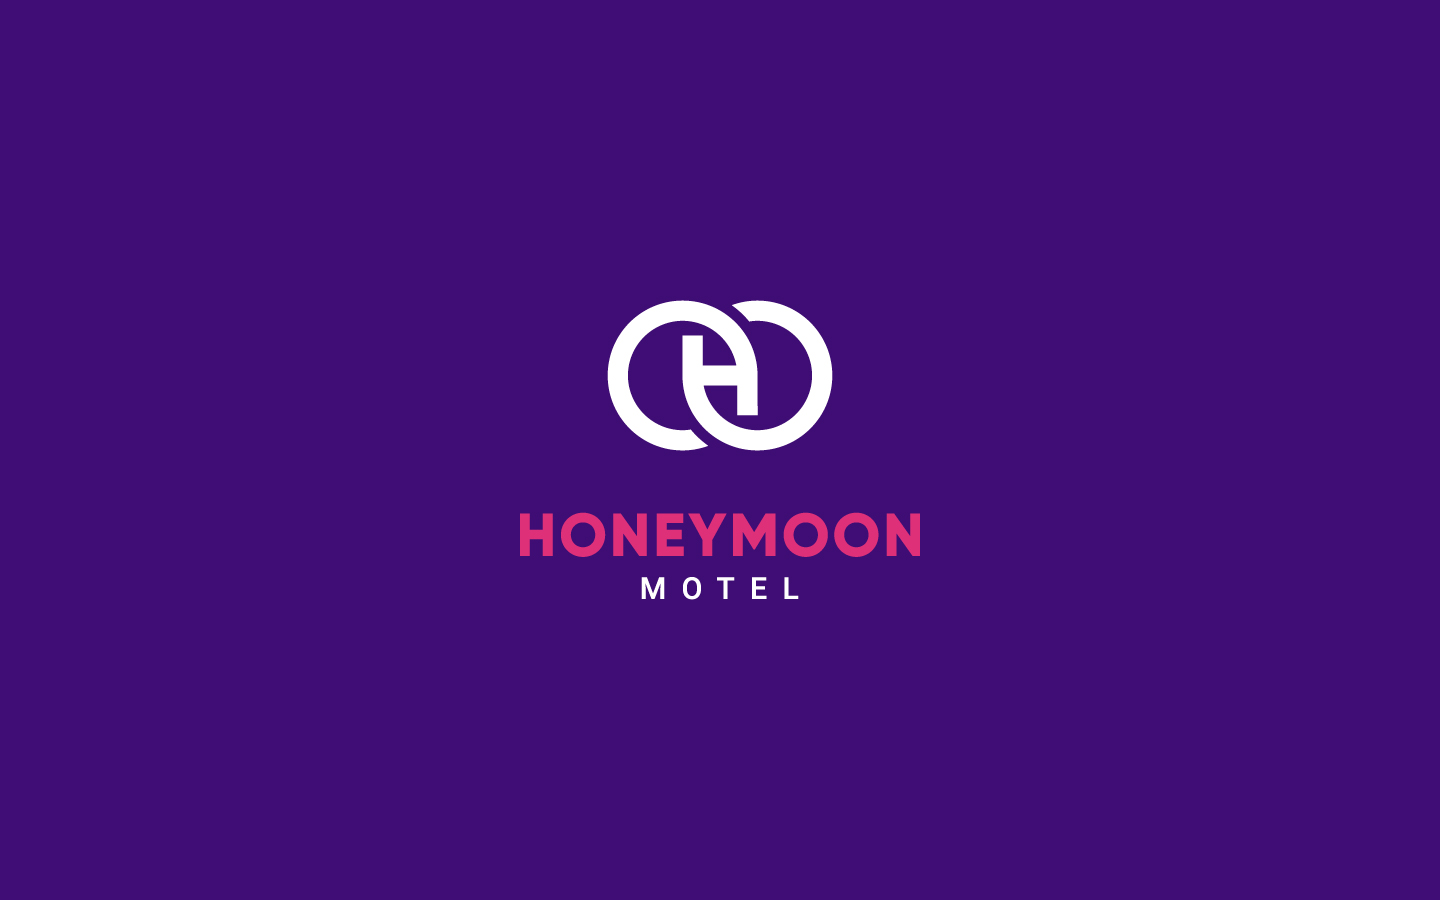 Honeymoon Motel